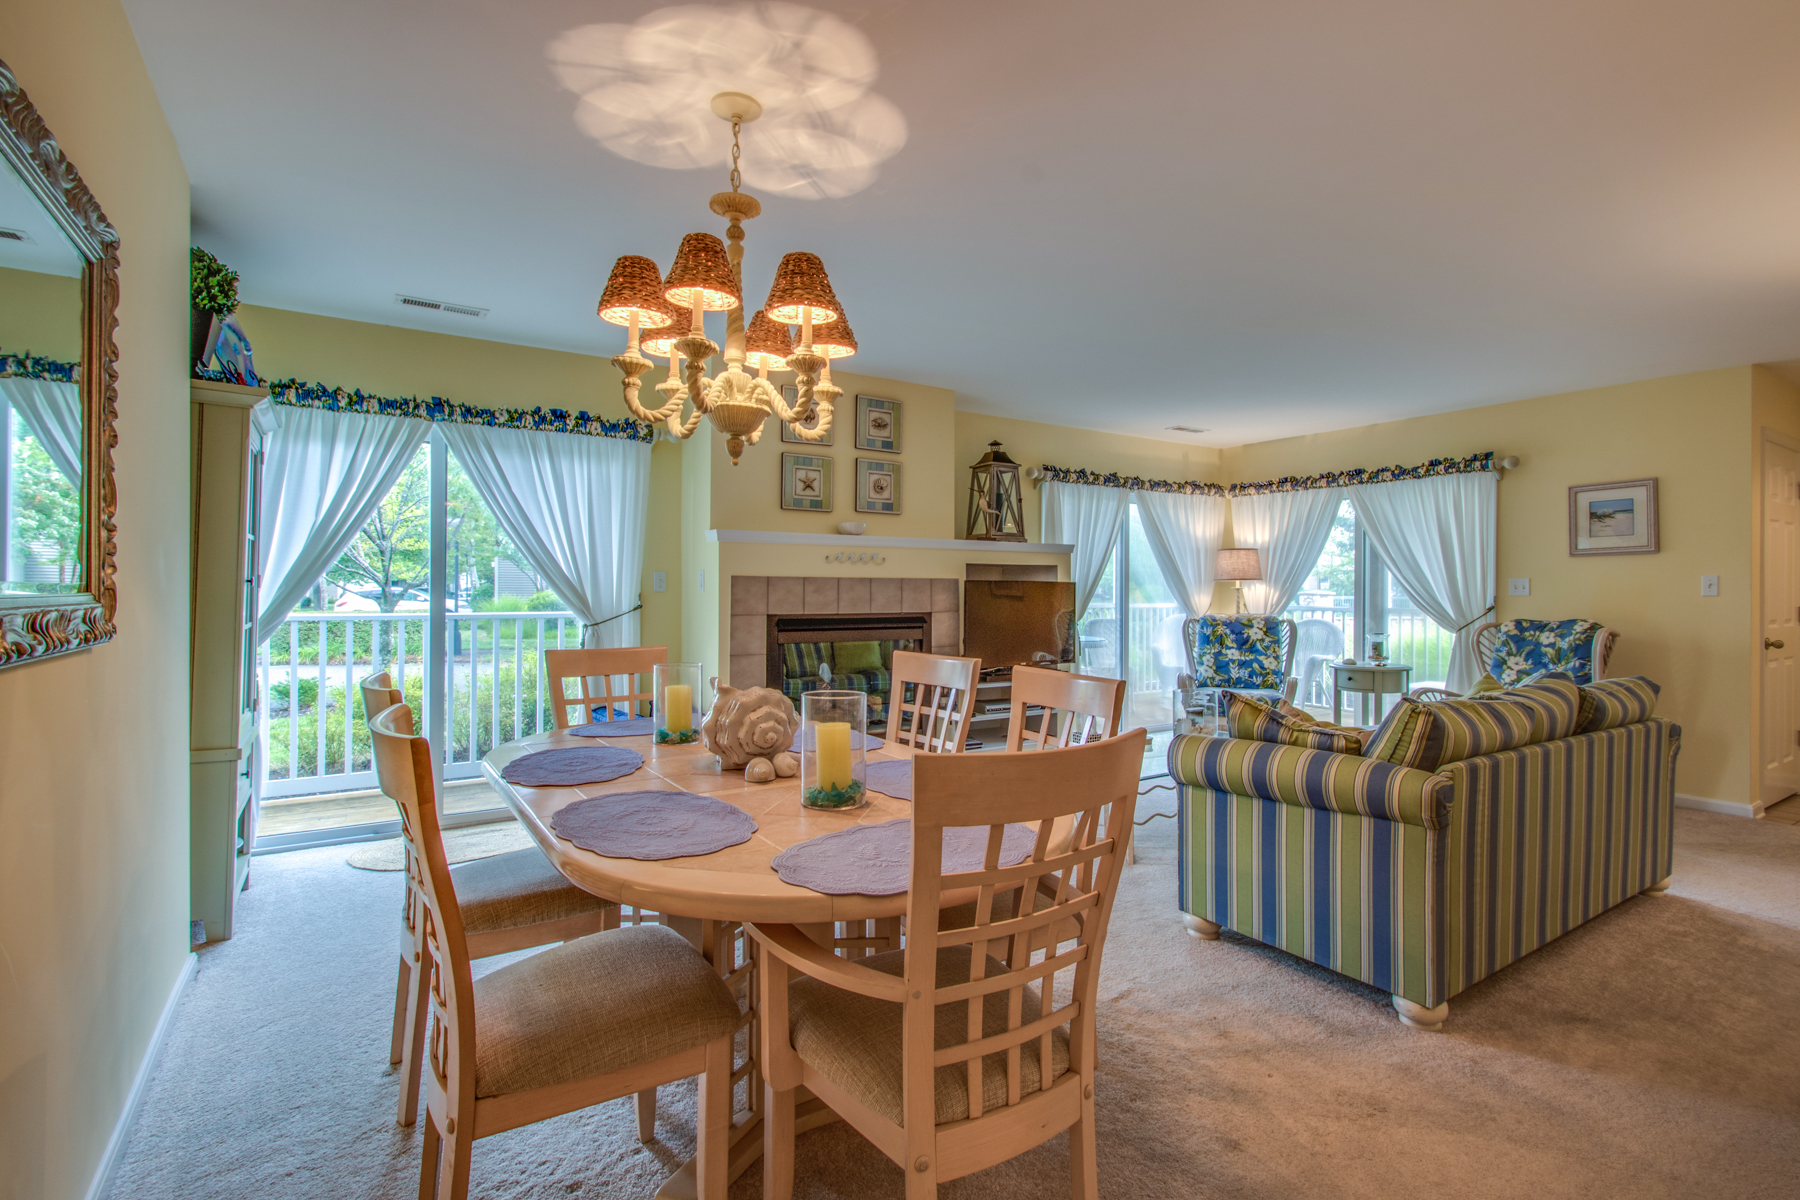 Single Family Home for Sale at 38948 Cypress Lake Cir , 56158, Bethany Beach, DE 38948 Cypress Lake Cir 56158, Bethany Beach, Delaware 19930 United States